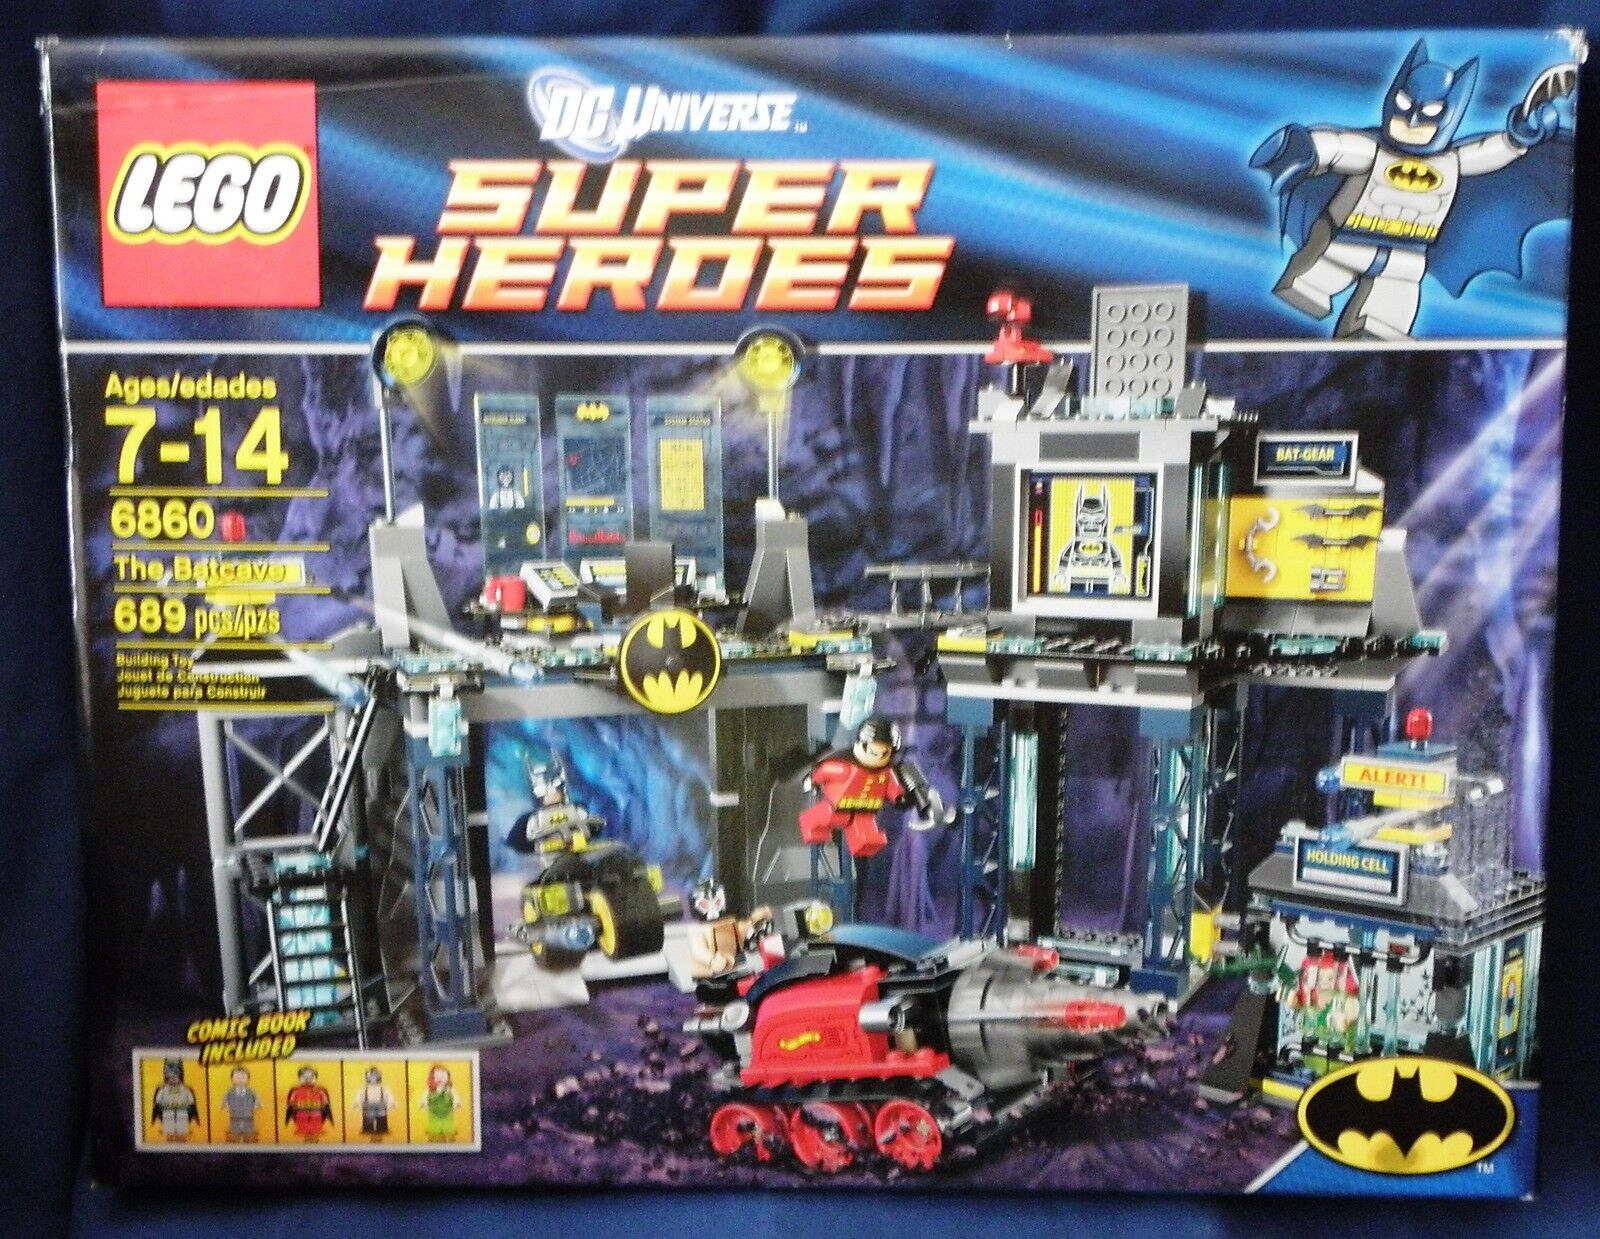 Lego DC Universe Super Heroes The Bat cave new in box